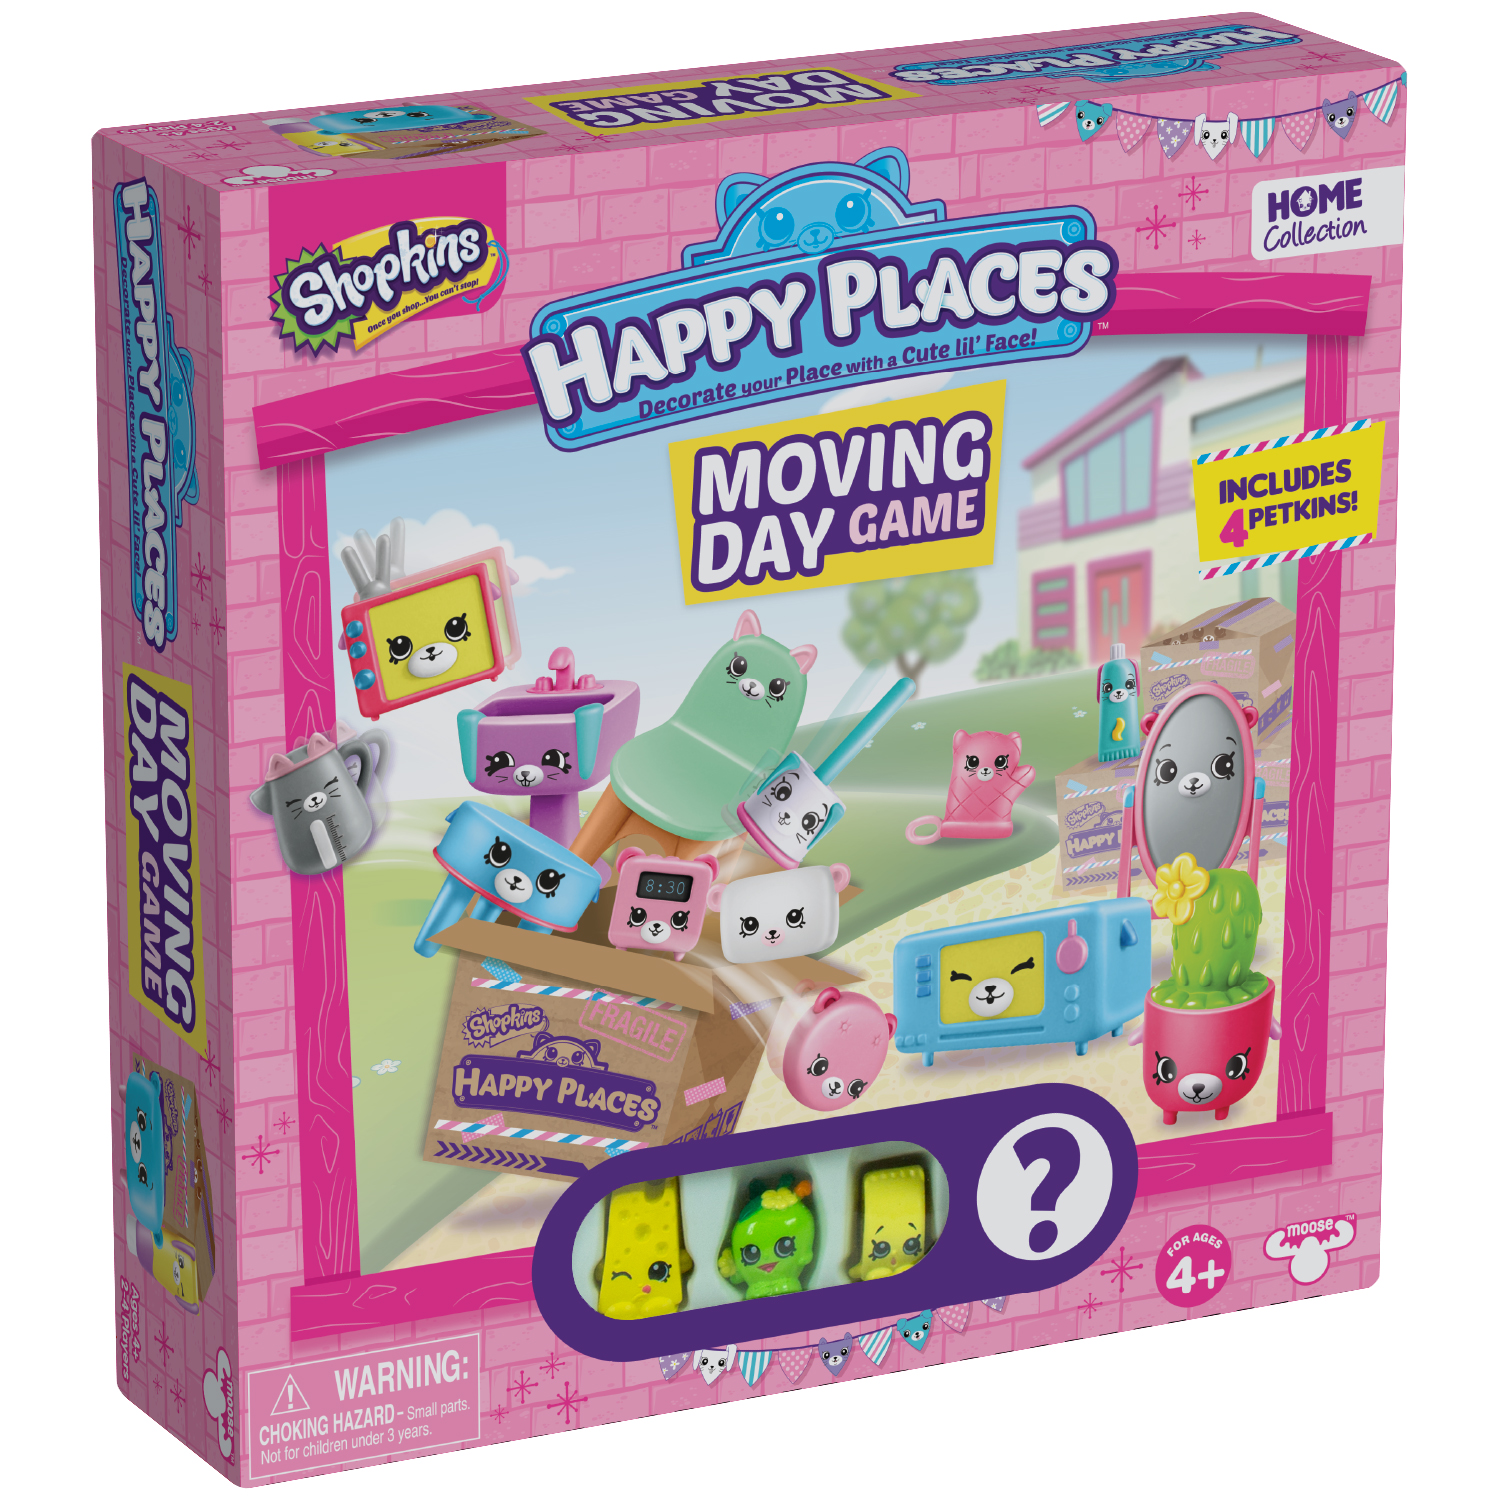 Shopkins Happy Places Moving Day